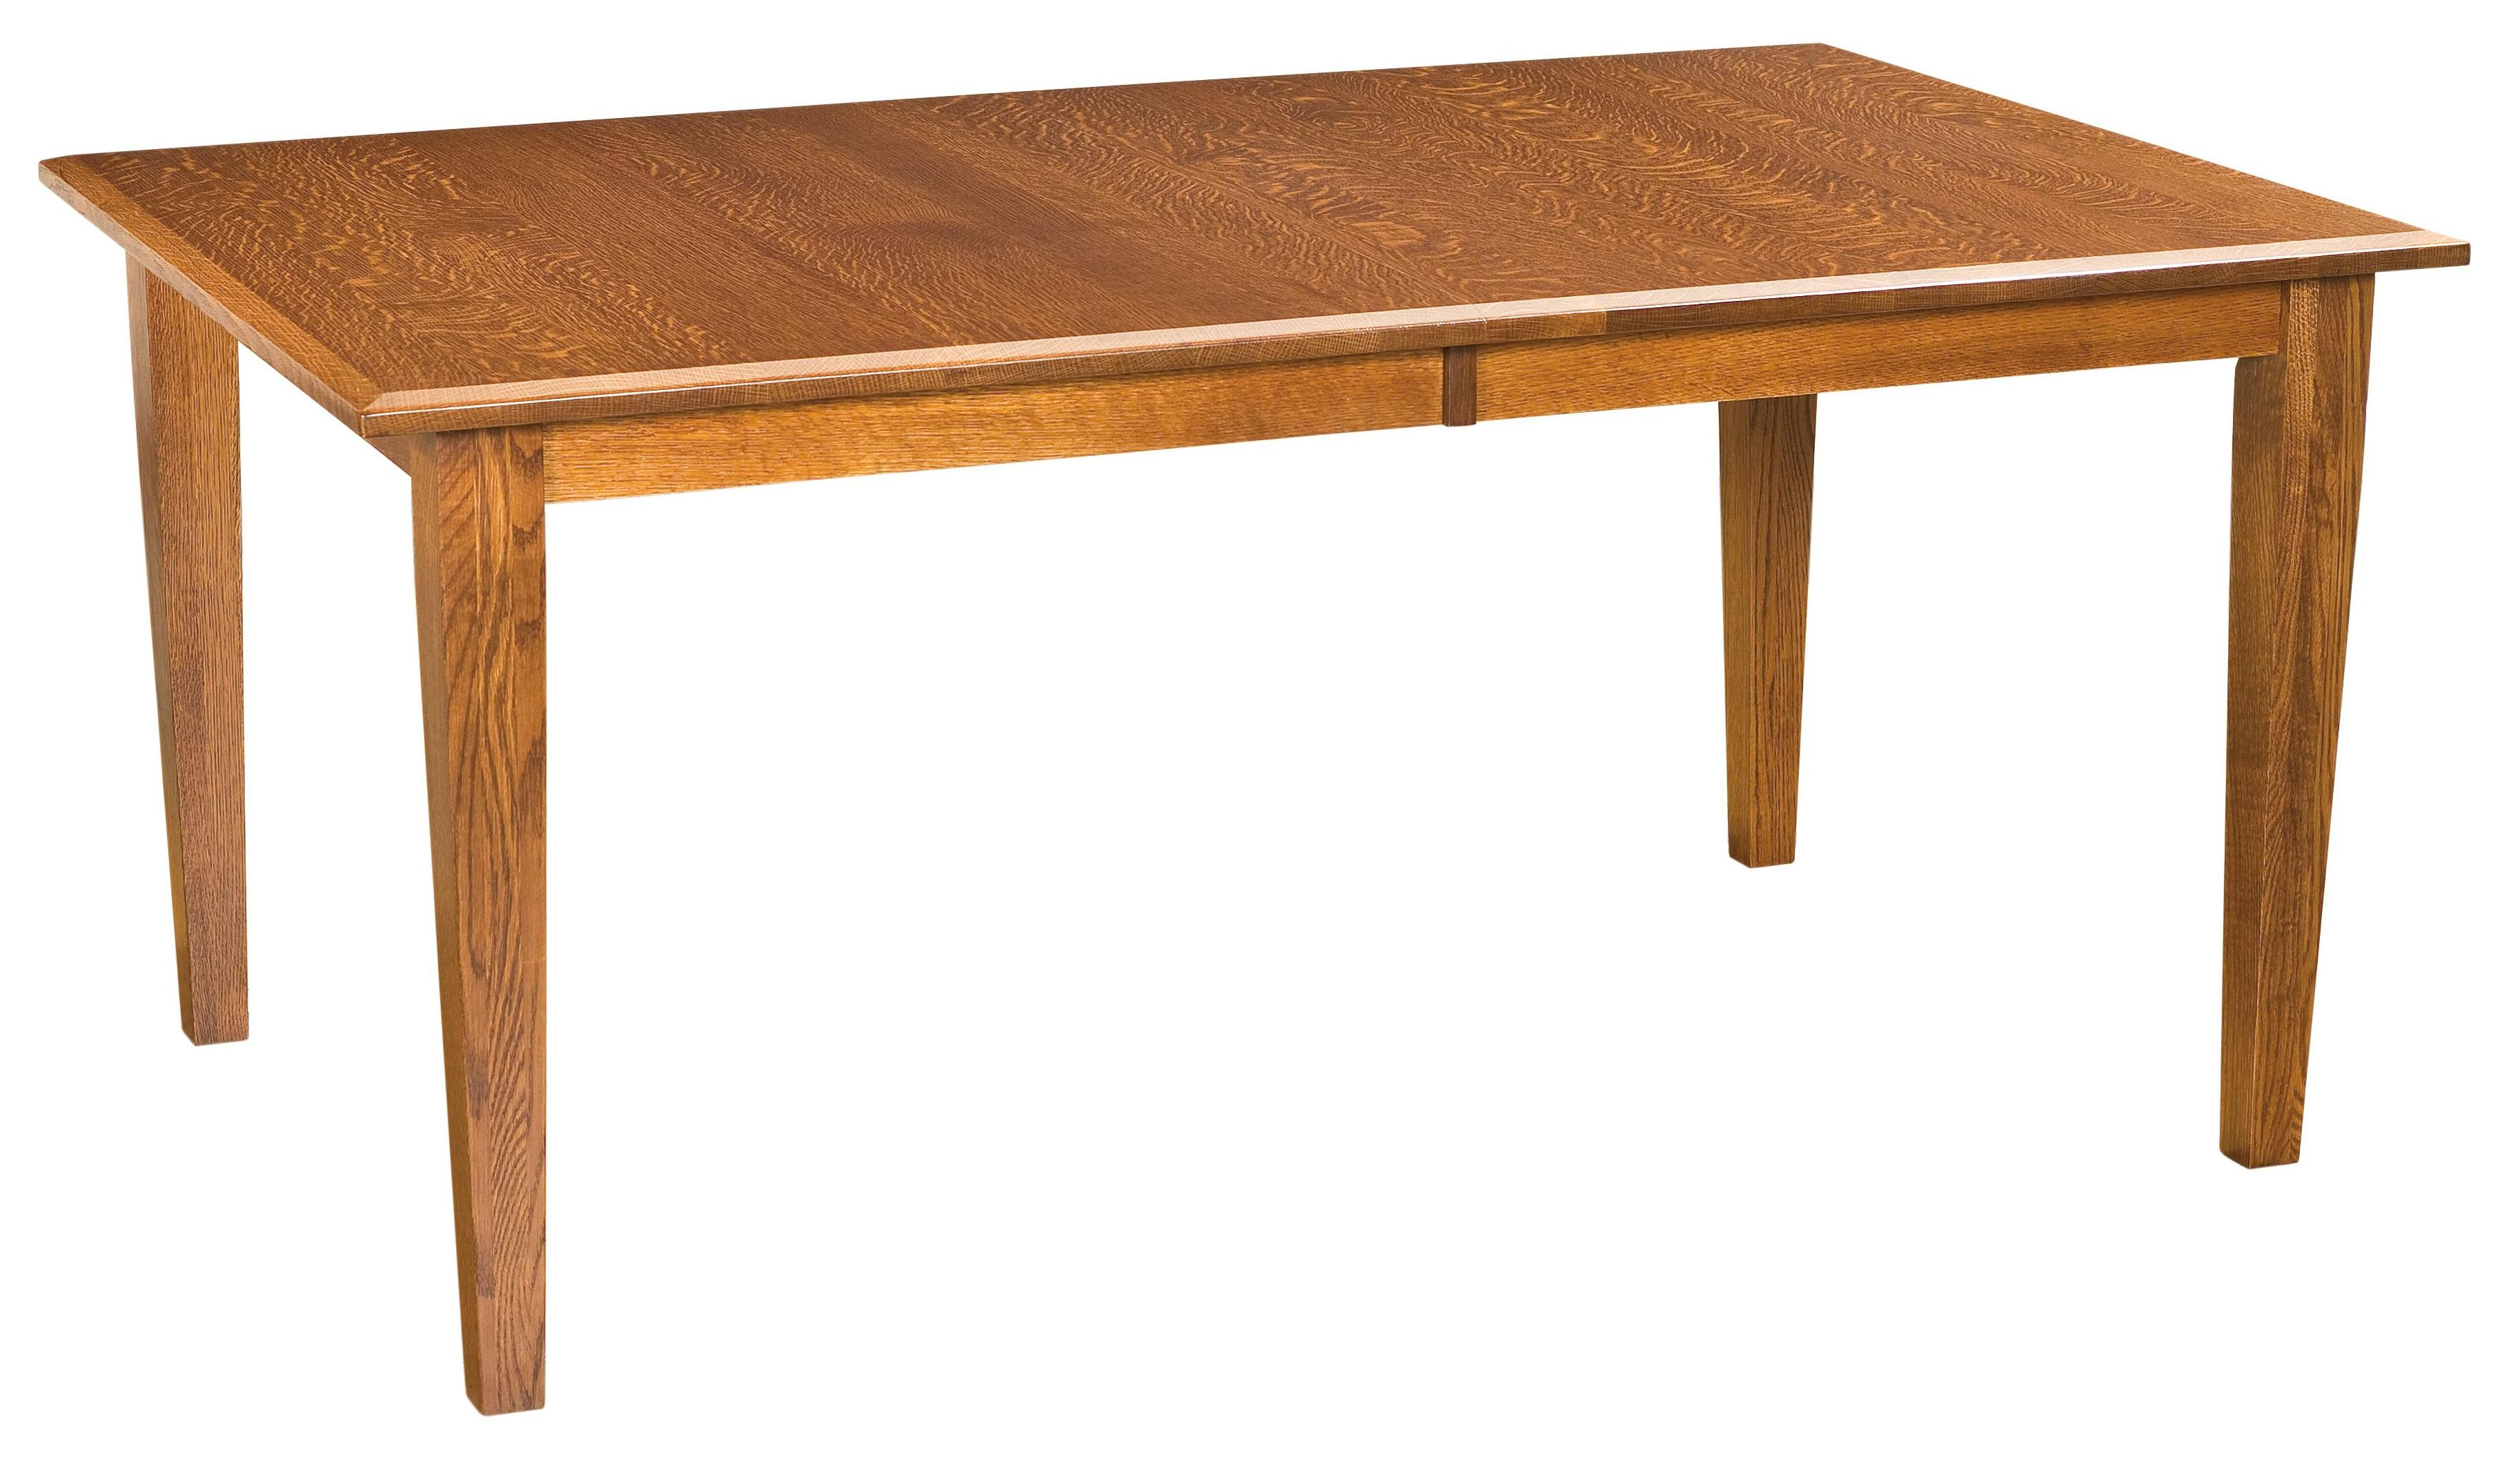 "Classic 42""x72"" Table by Amish Impressions by Fusion Designs at Mueller Furniture"